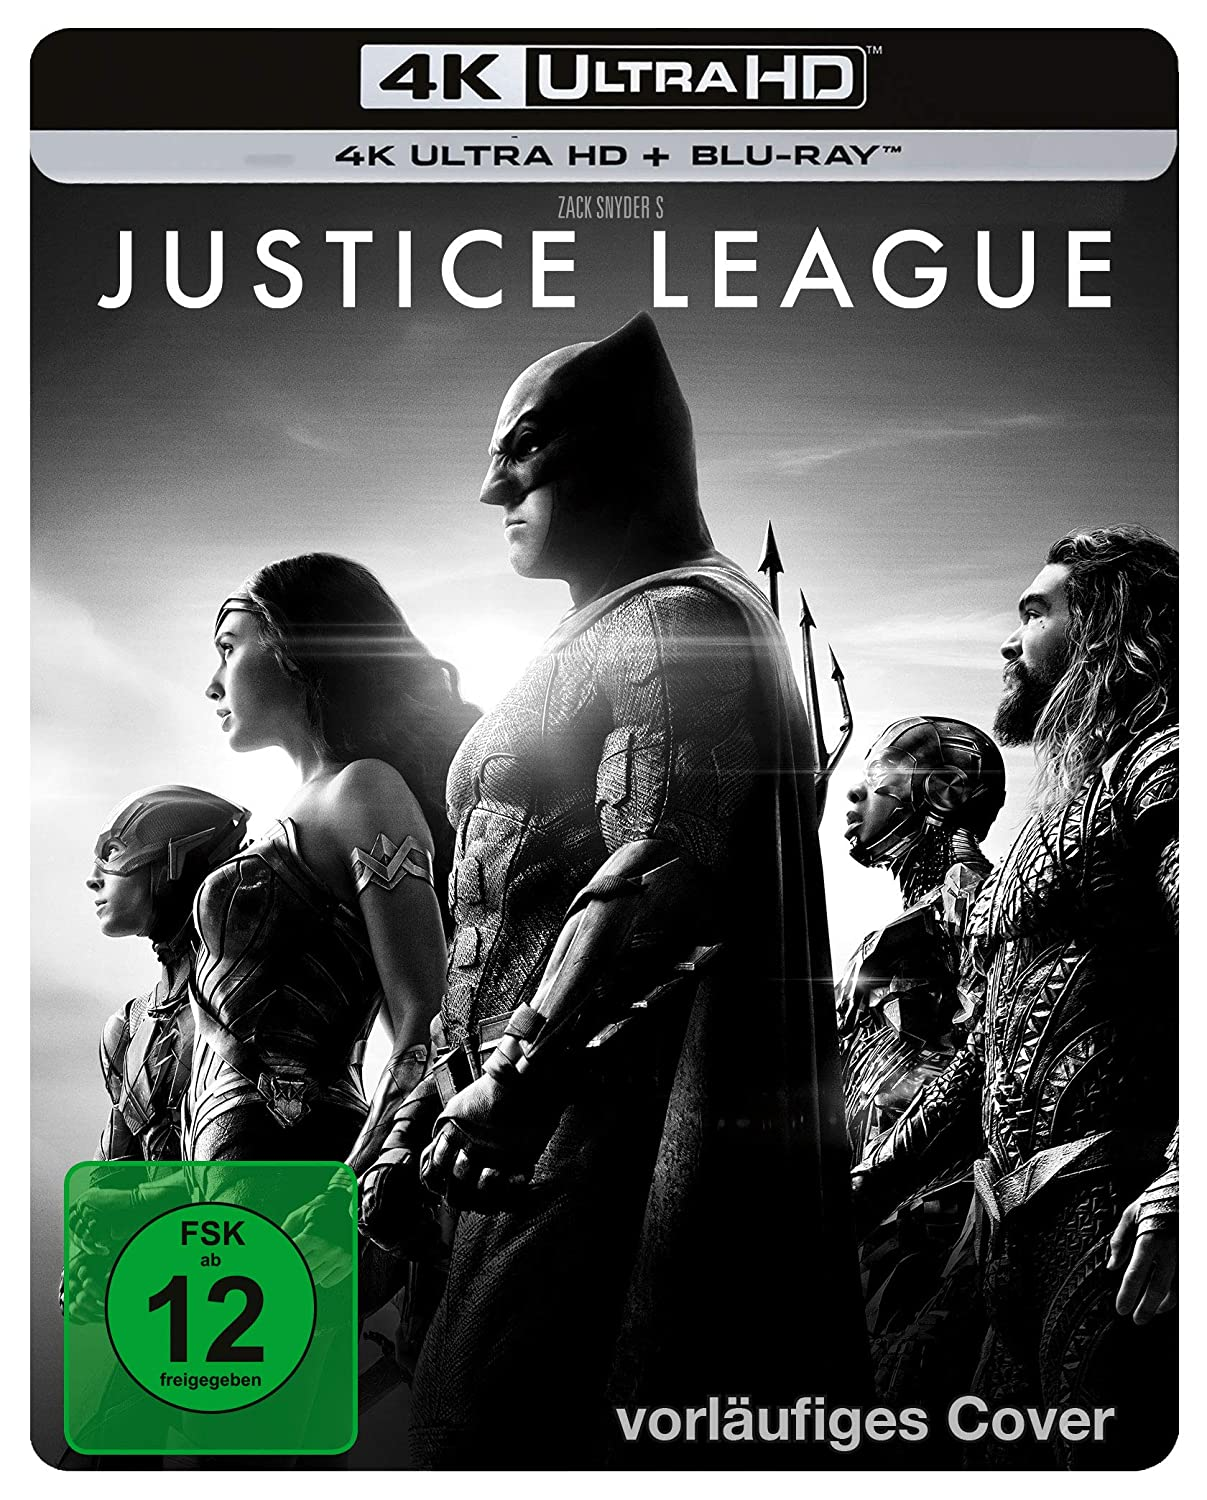 The Justice League (Snyder Cut) 4K Steelbook (UHD + Blu-ray Disc)